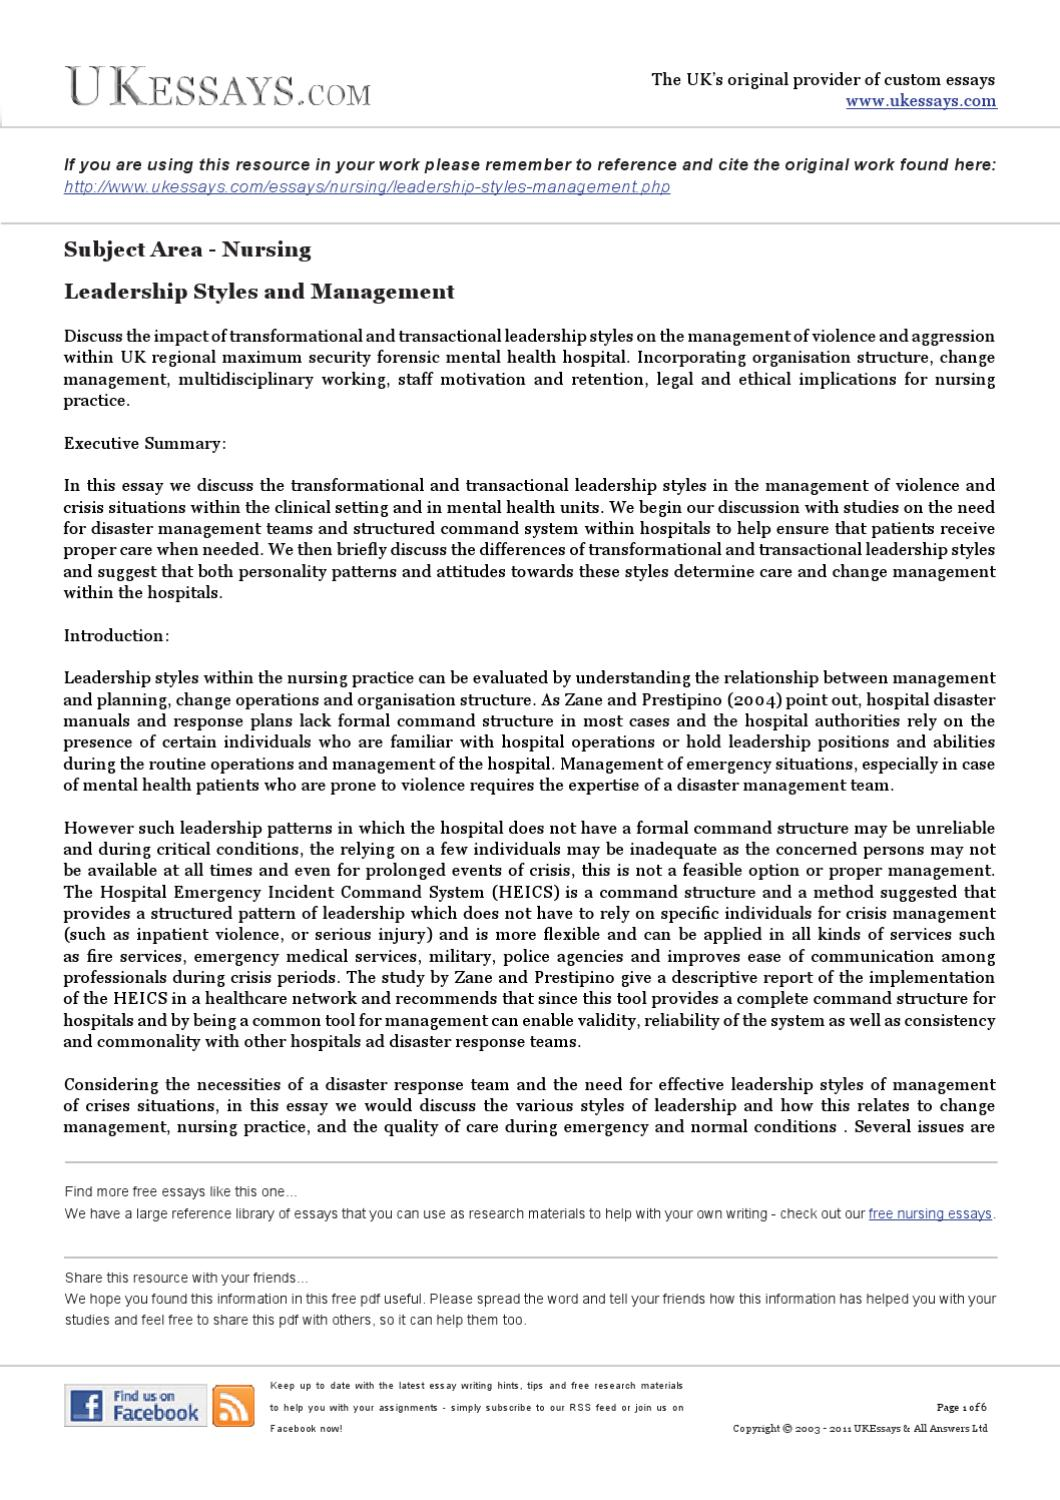 Custom research paper on management style